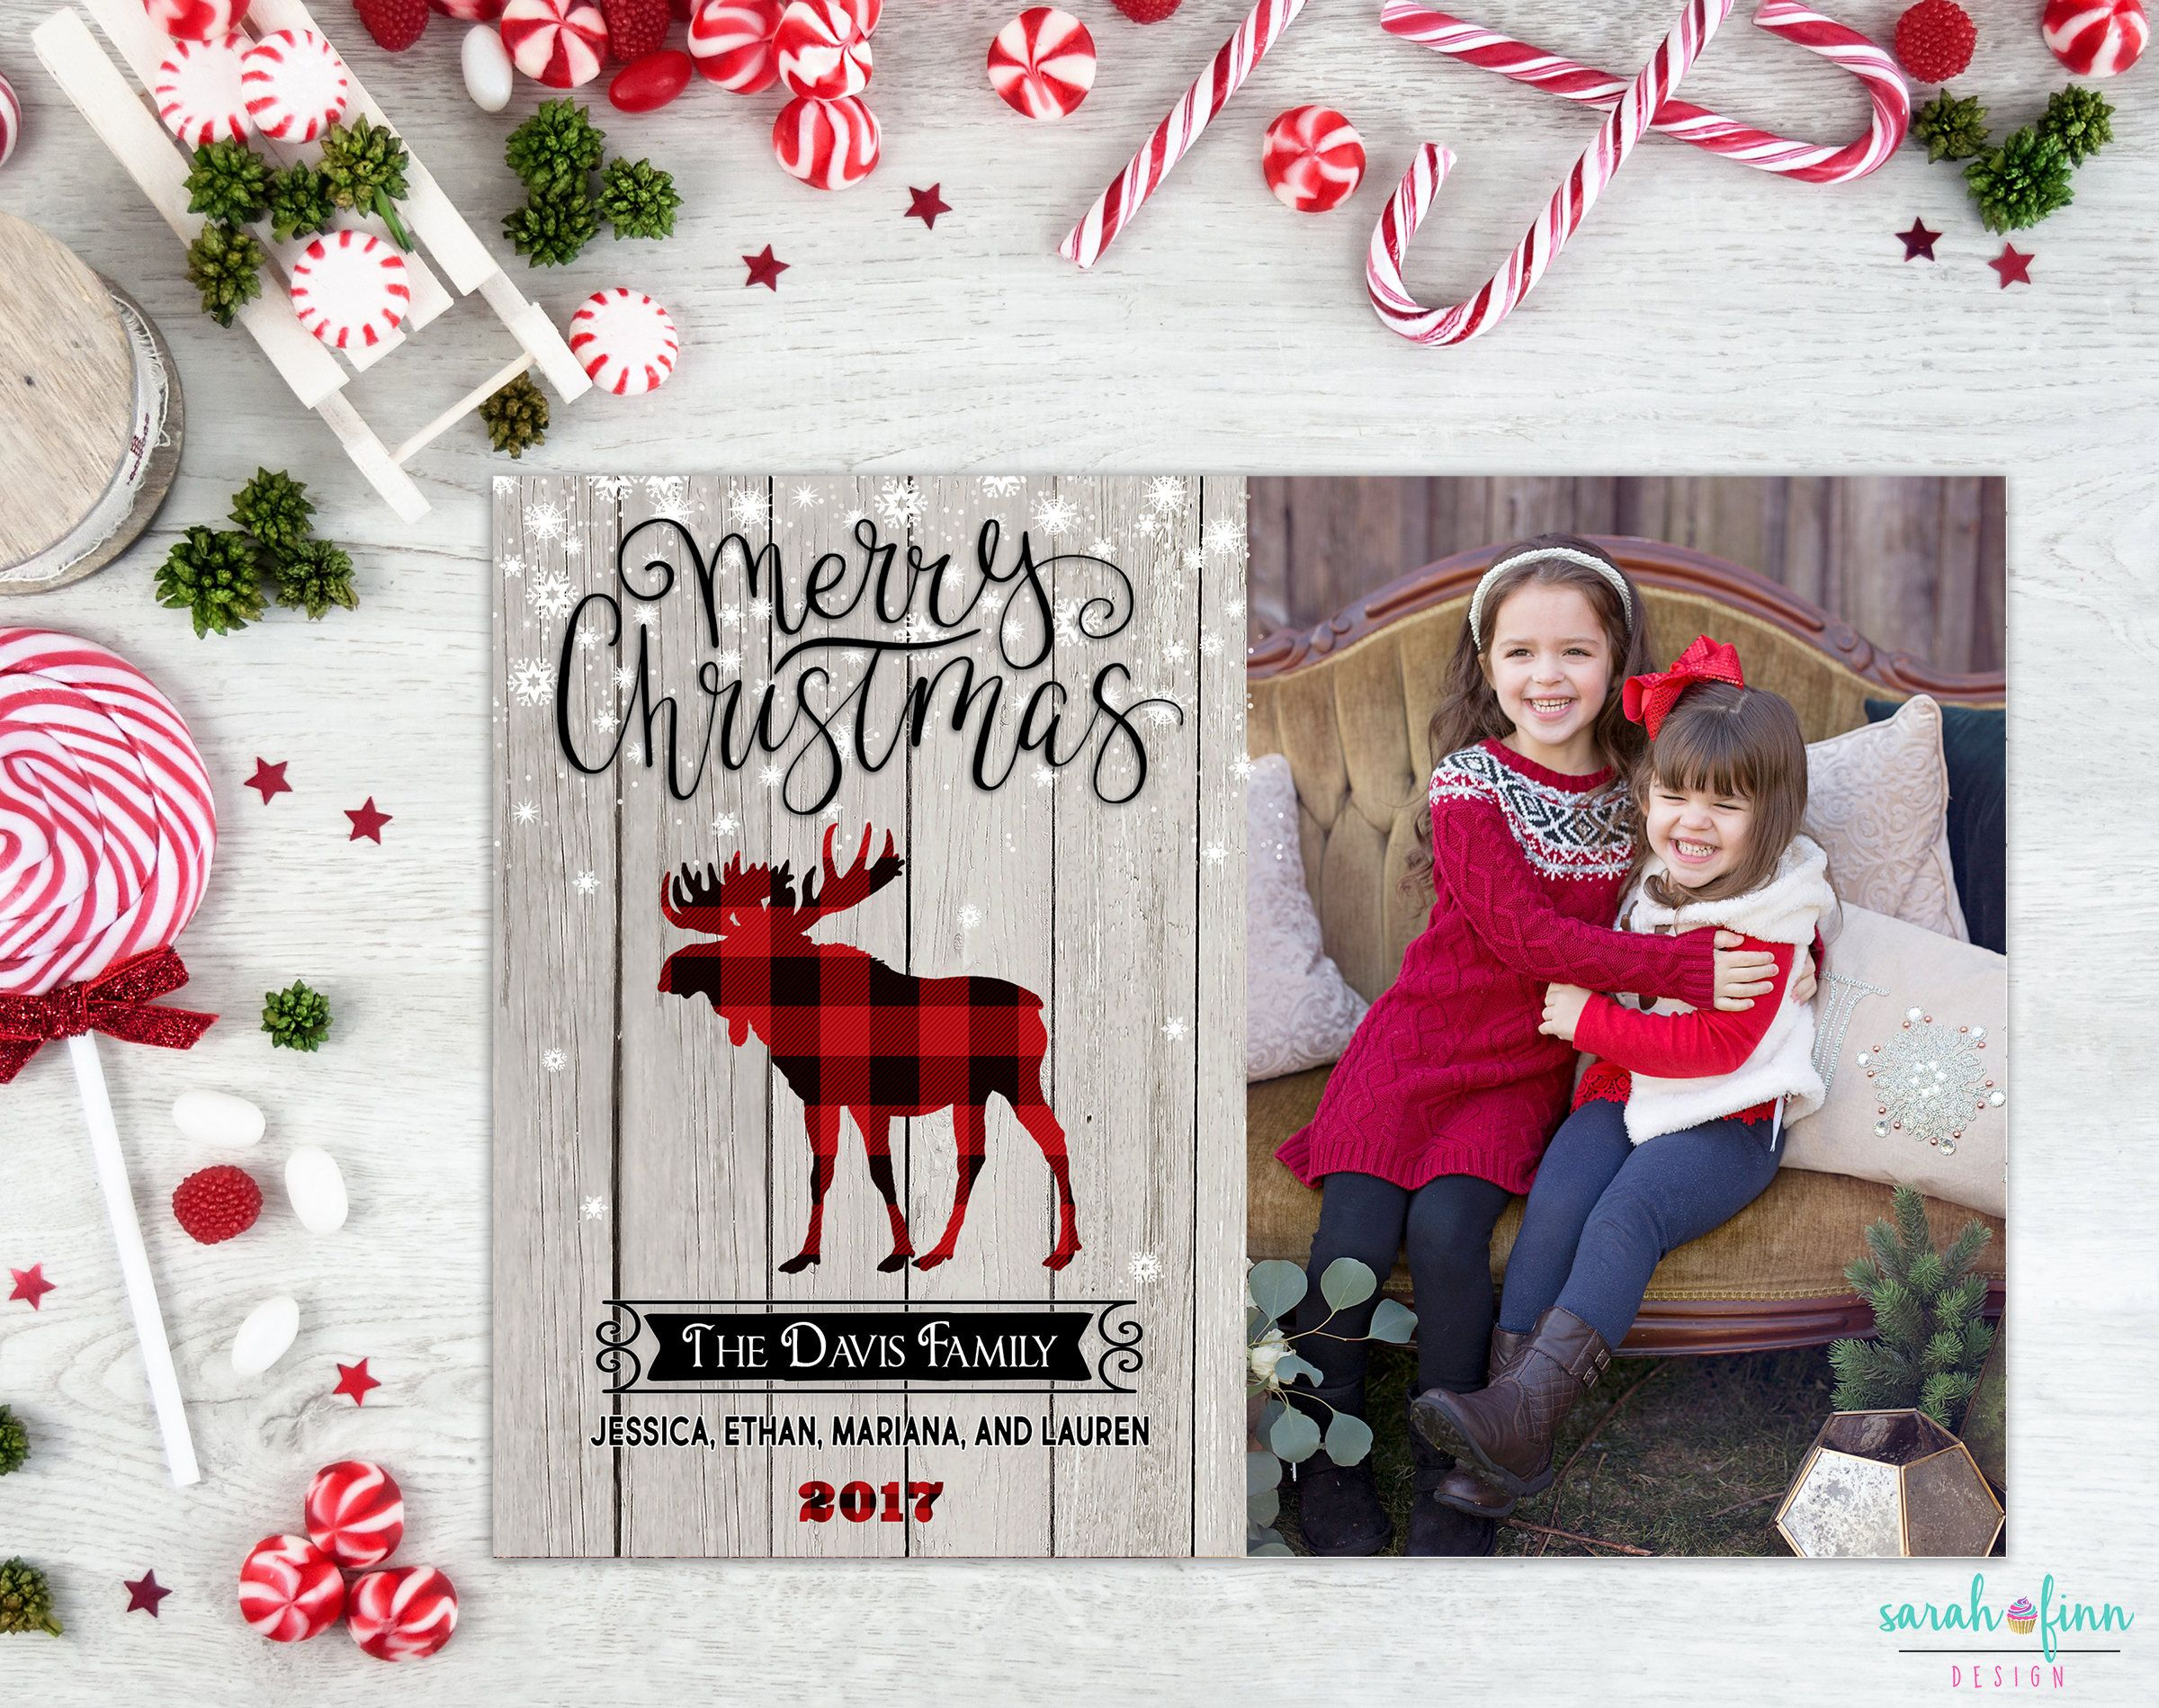 Buffalo Plaid Christmas Card Moose Photo Collage Rustic Etsy Buffalo Plaid Christmas Card Plaid Christmas Card Christmas Cards